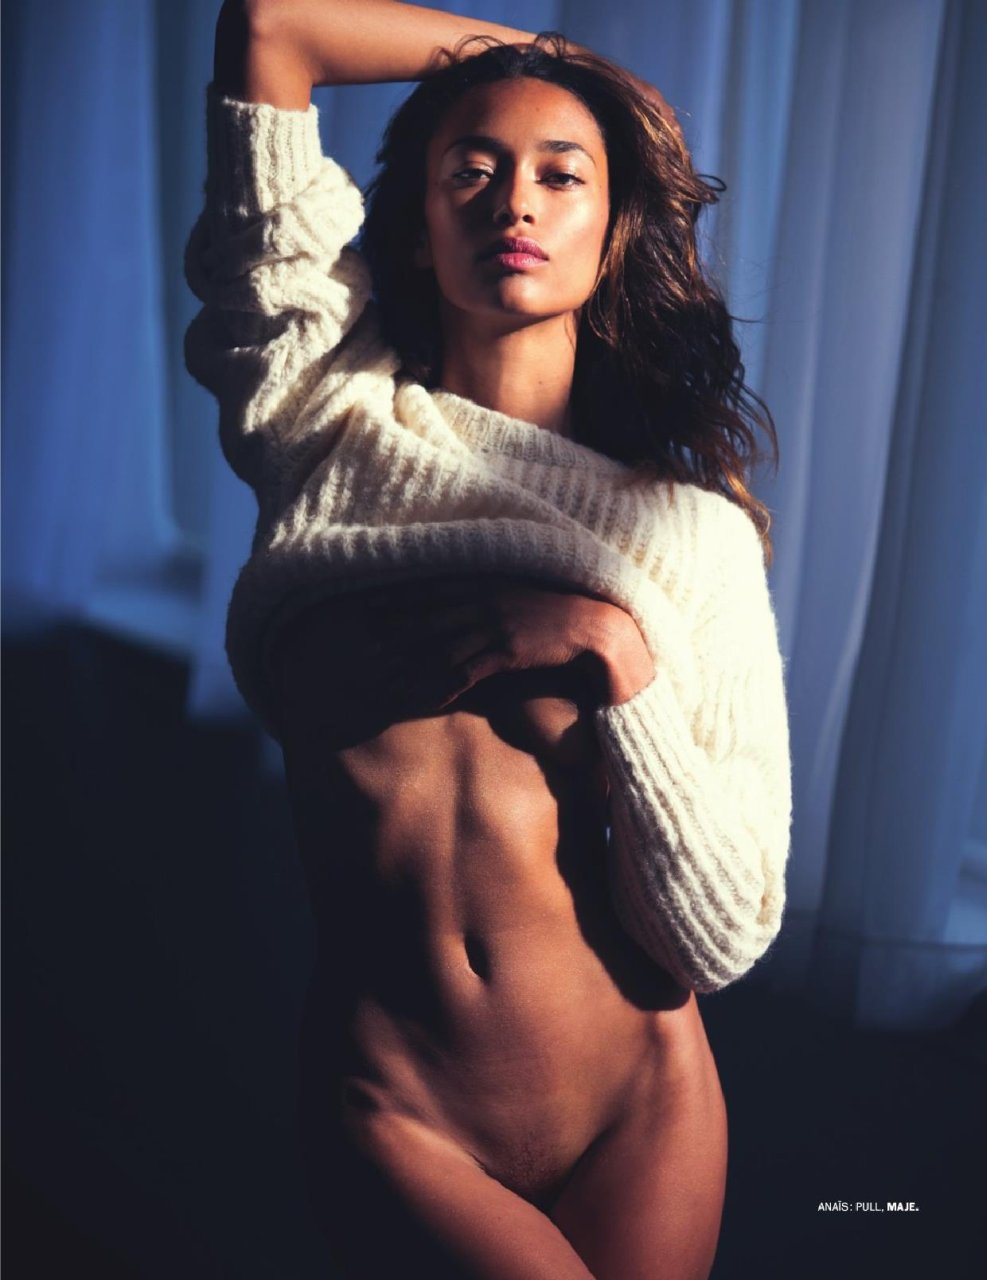 Sexy Anais Mali nude photos 2019